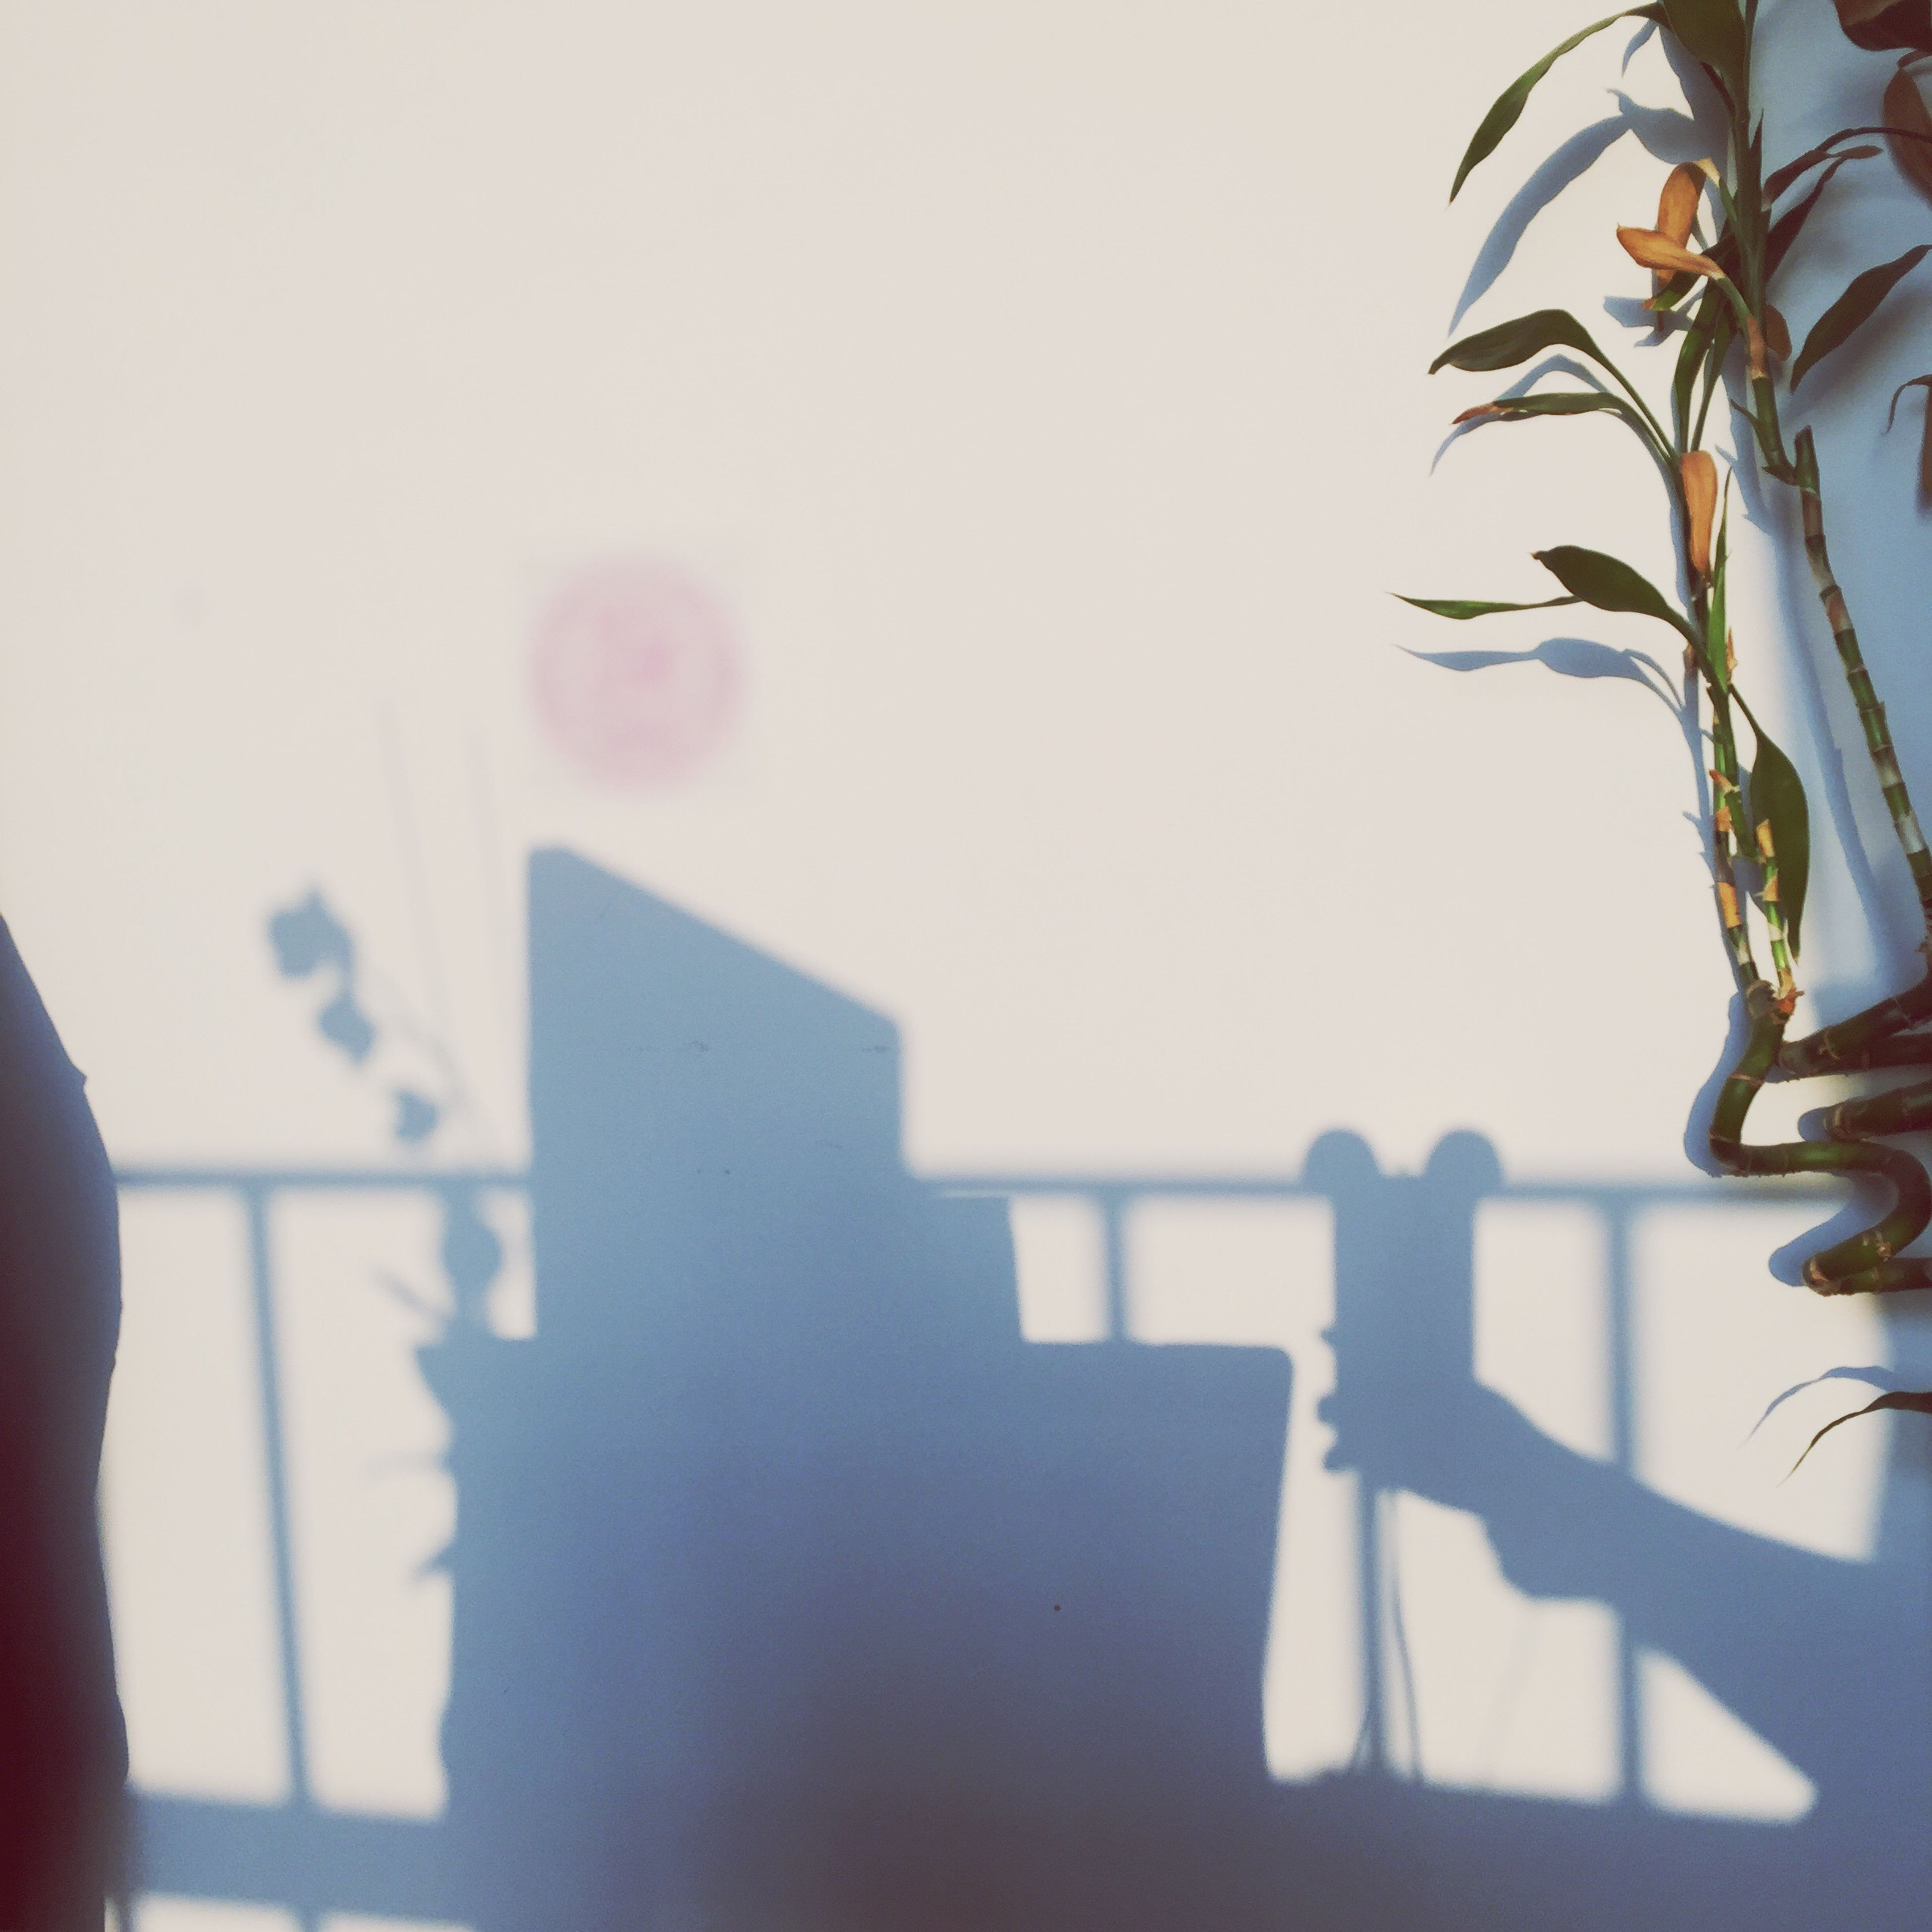 focus on foreground, cropped, part of, built structure, indoors, architecture, person, close-up, potted plant, shadow, selective focus, day, sunlight, wall - building feature, building exterior, one person, growth, flower, clear sky, plant